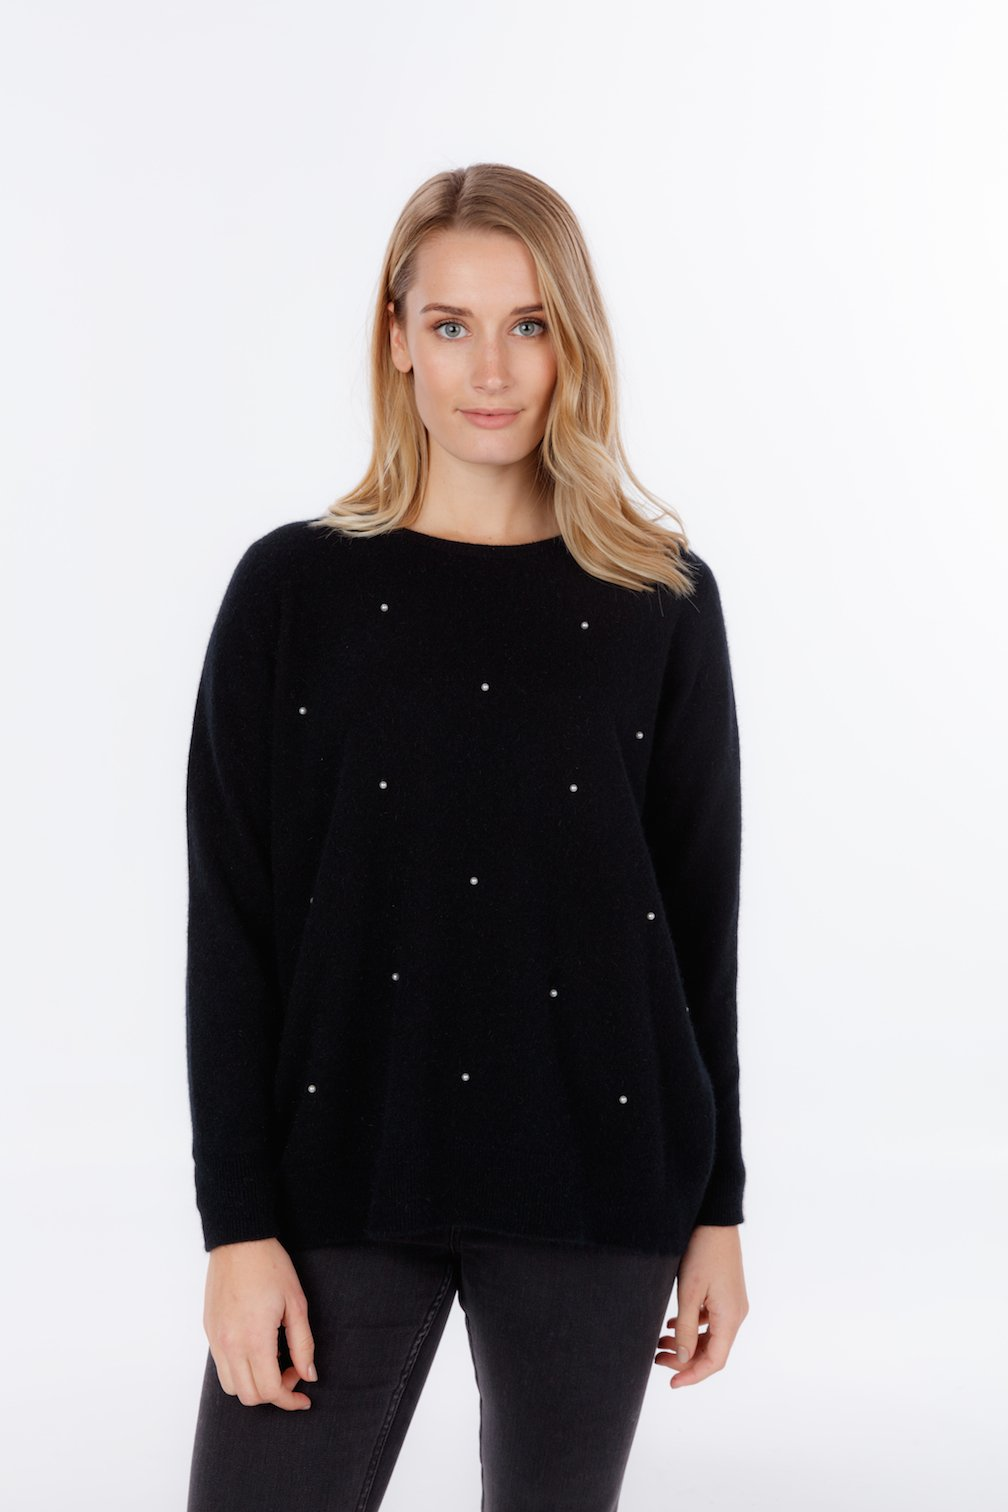 NIGHT SKY SWEATER - Woolshed Gallery